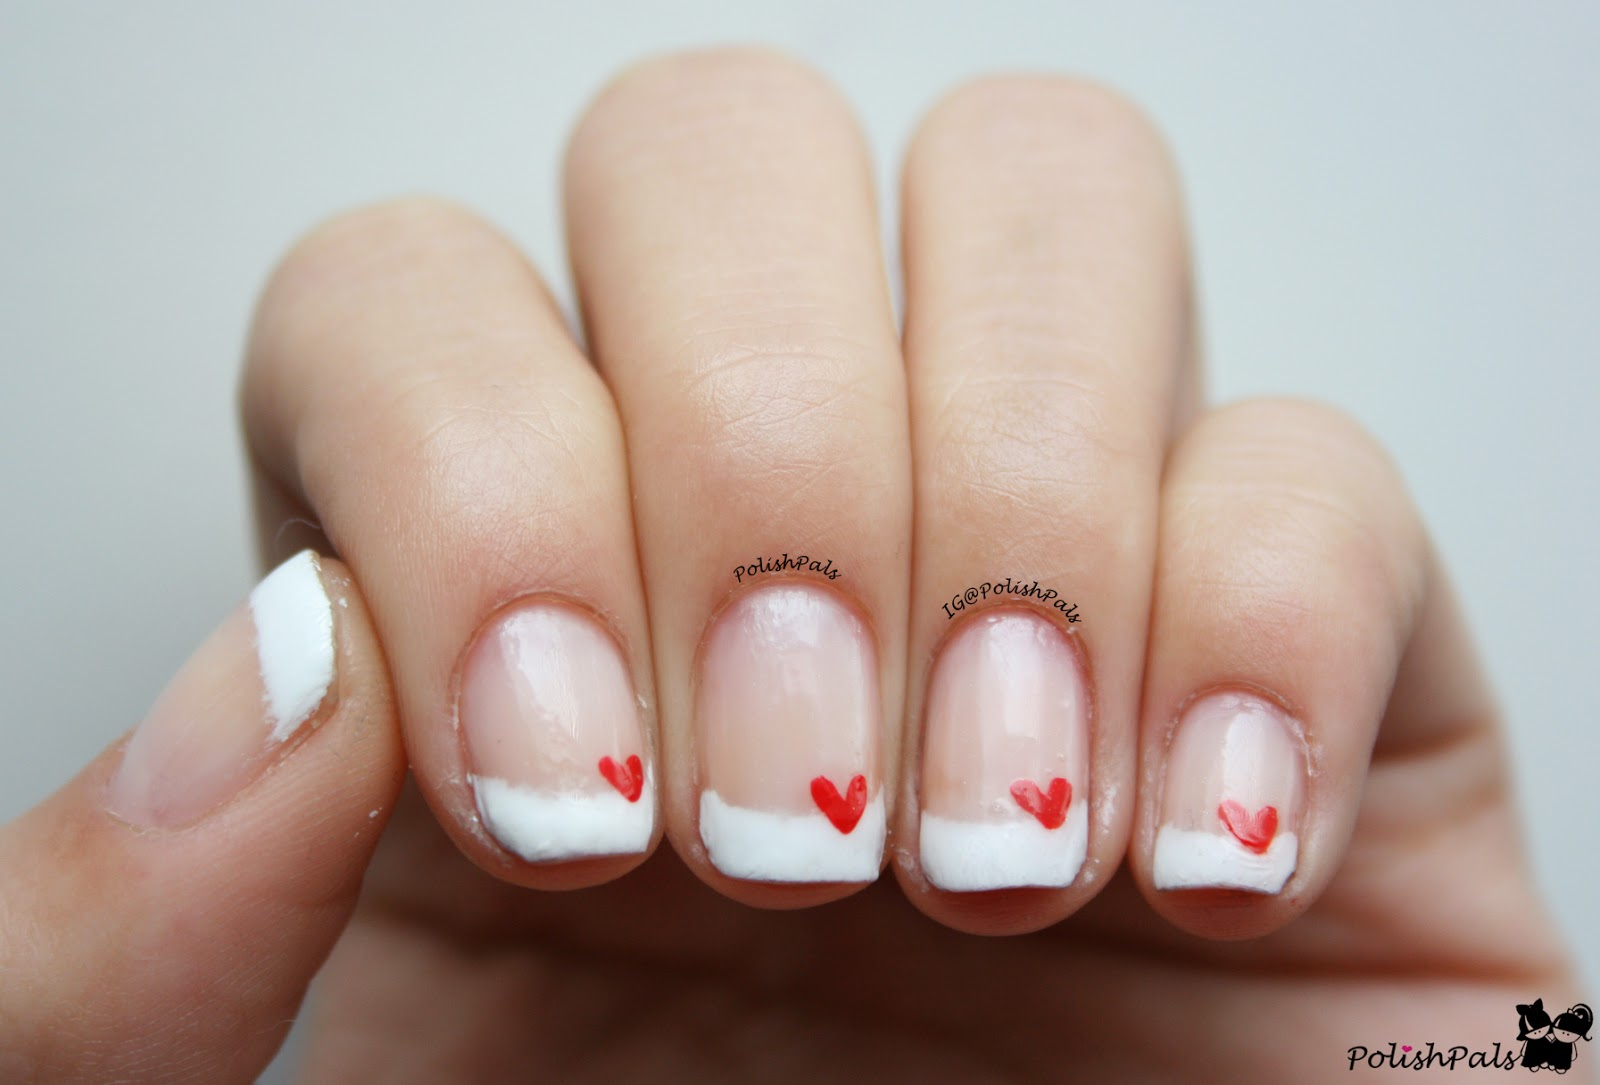 Polish Pals: French Tips + Hearts